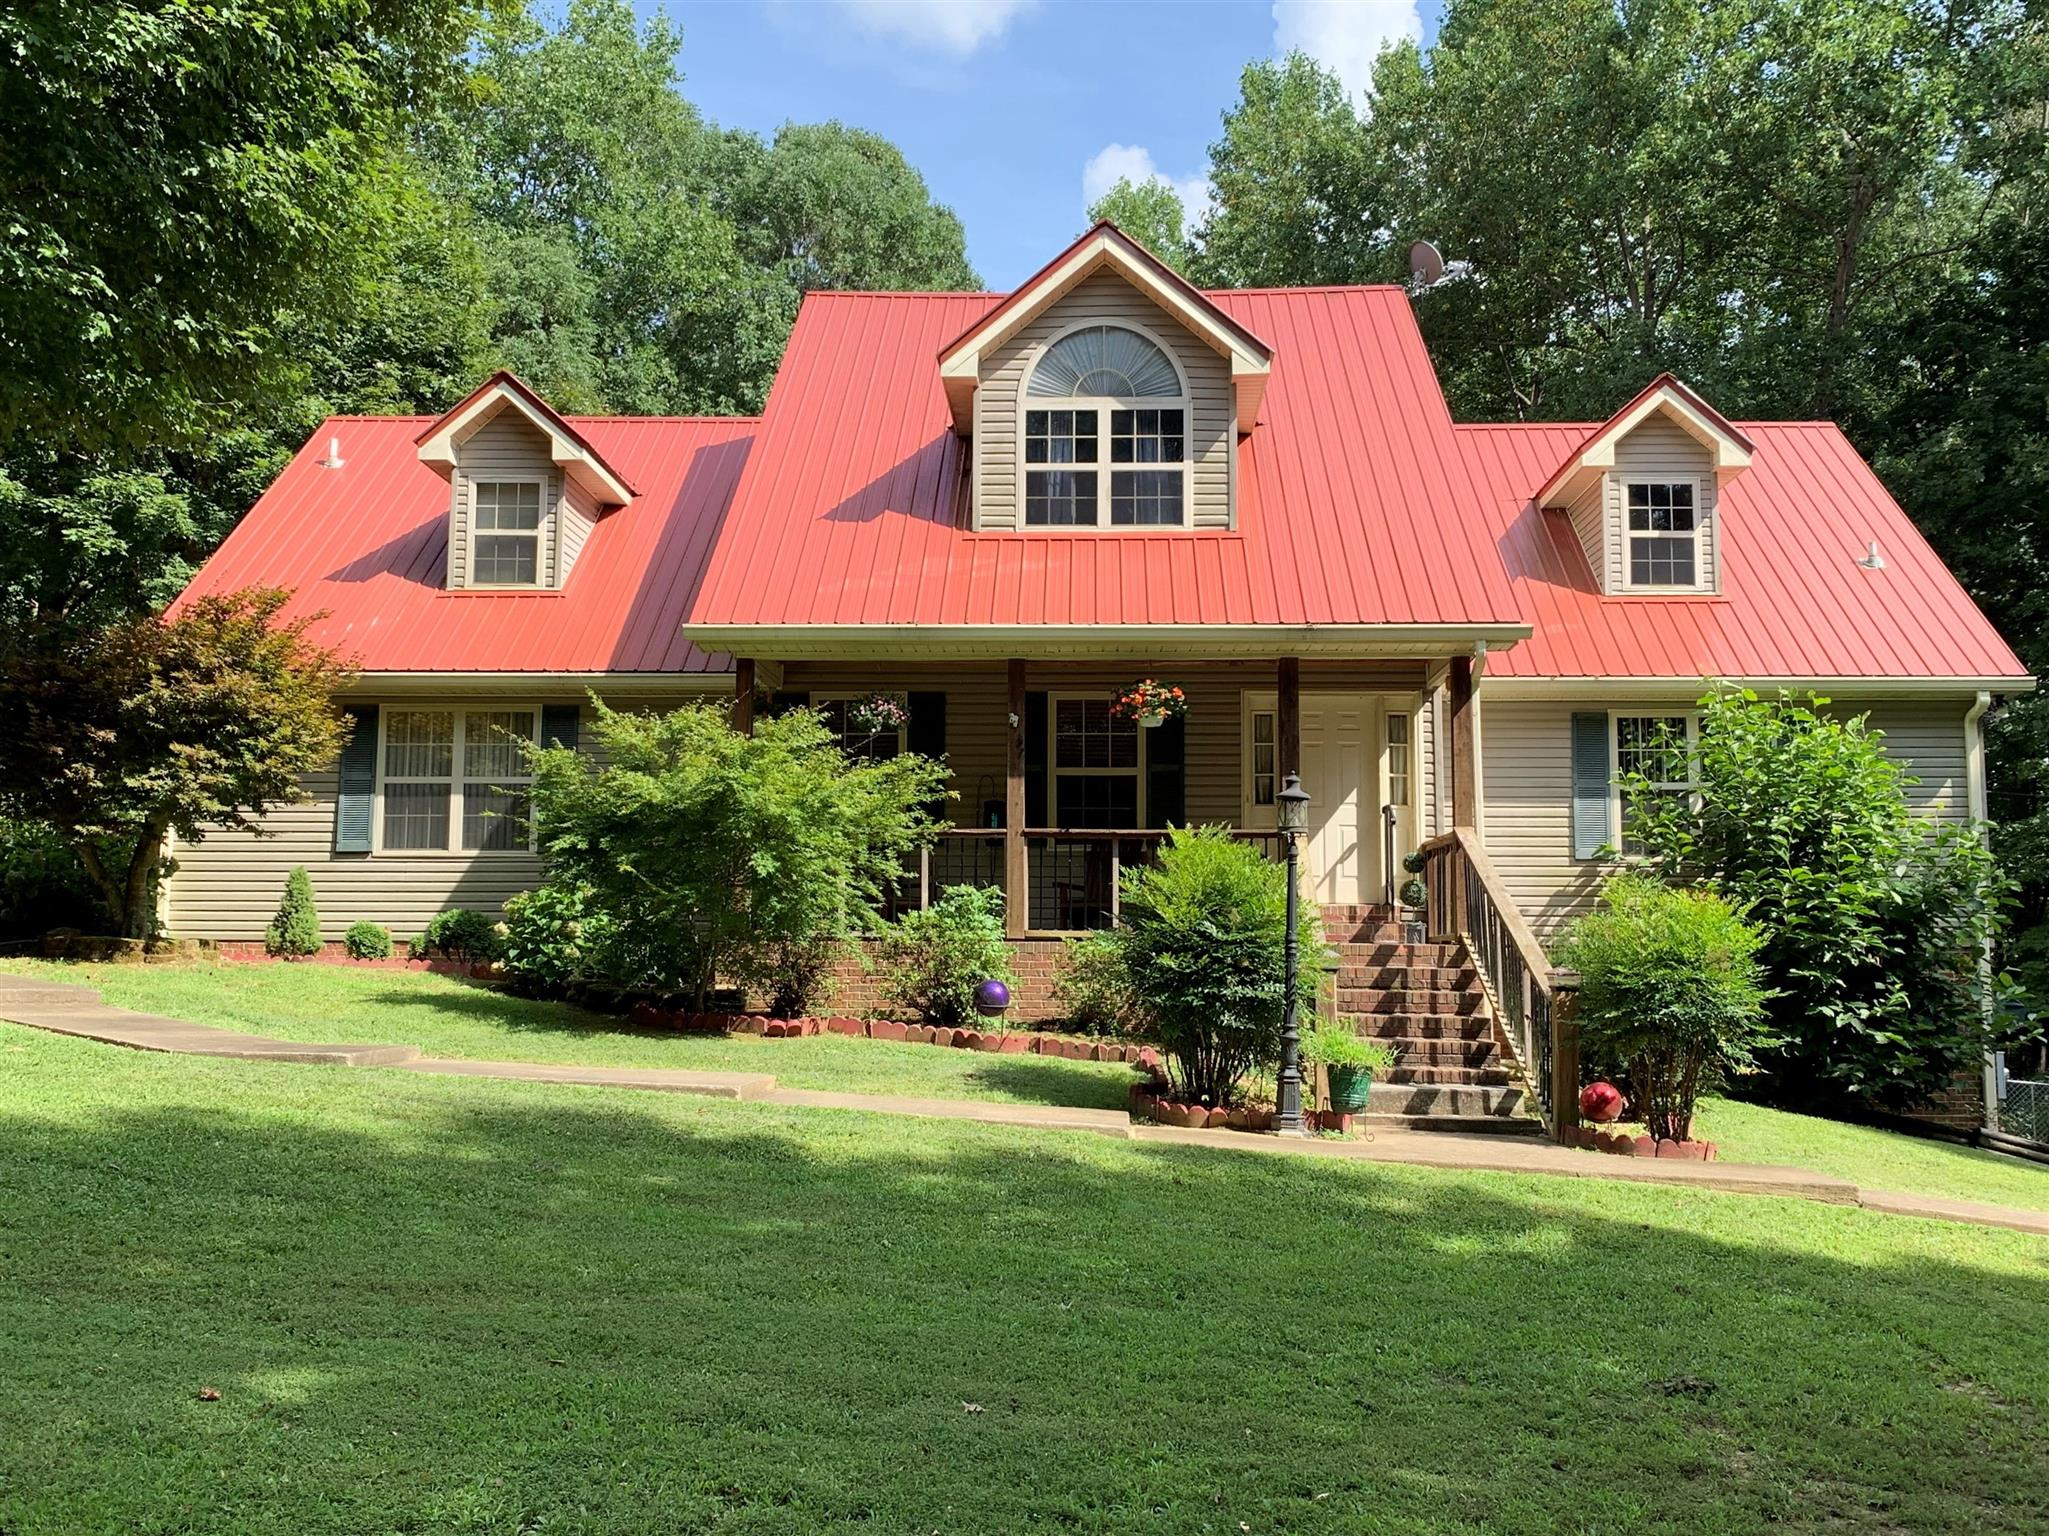 2524 Highway 70E, Dickson, TN 37055 - Dickson, TN real estate listing